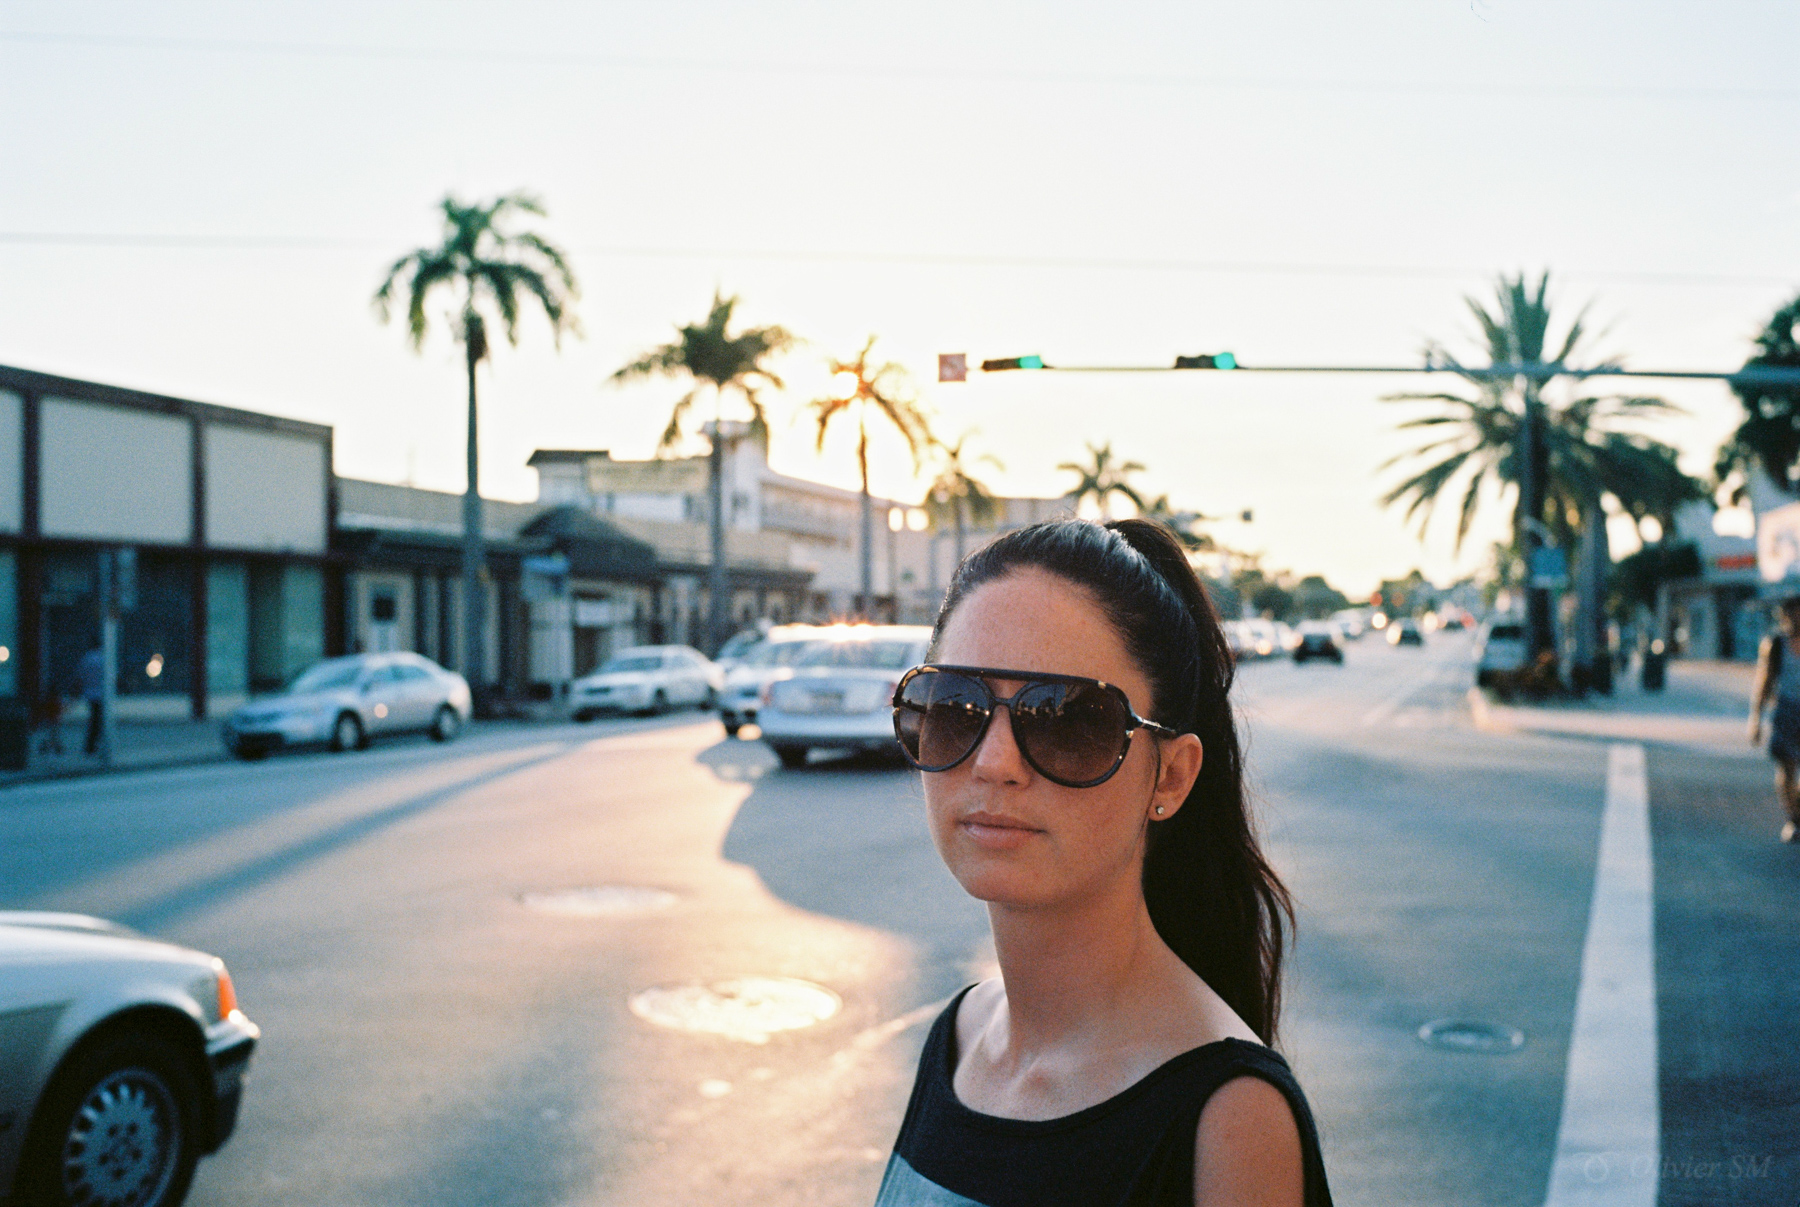 On the road again | Miami, USA | Voigtländer Bessa R3M | Voigtländer 35mm f/1.4 Nokton Classic